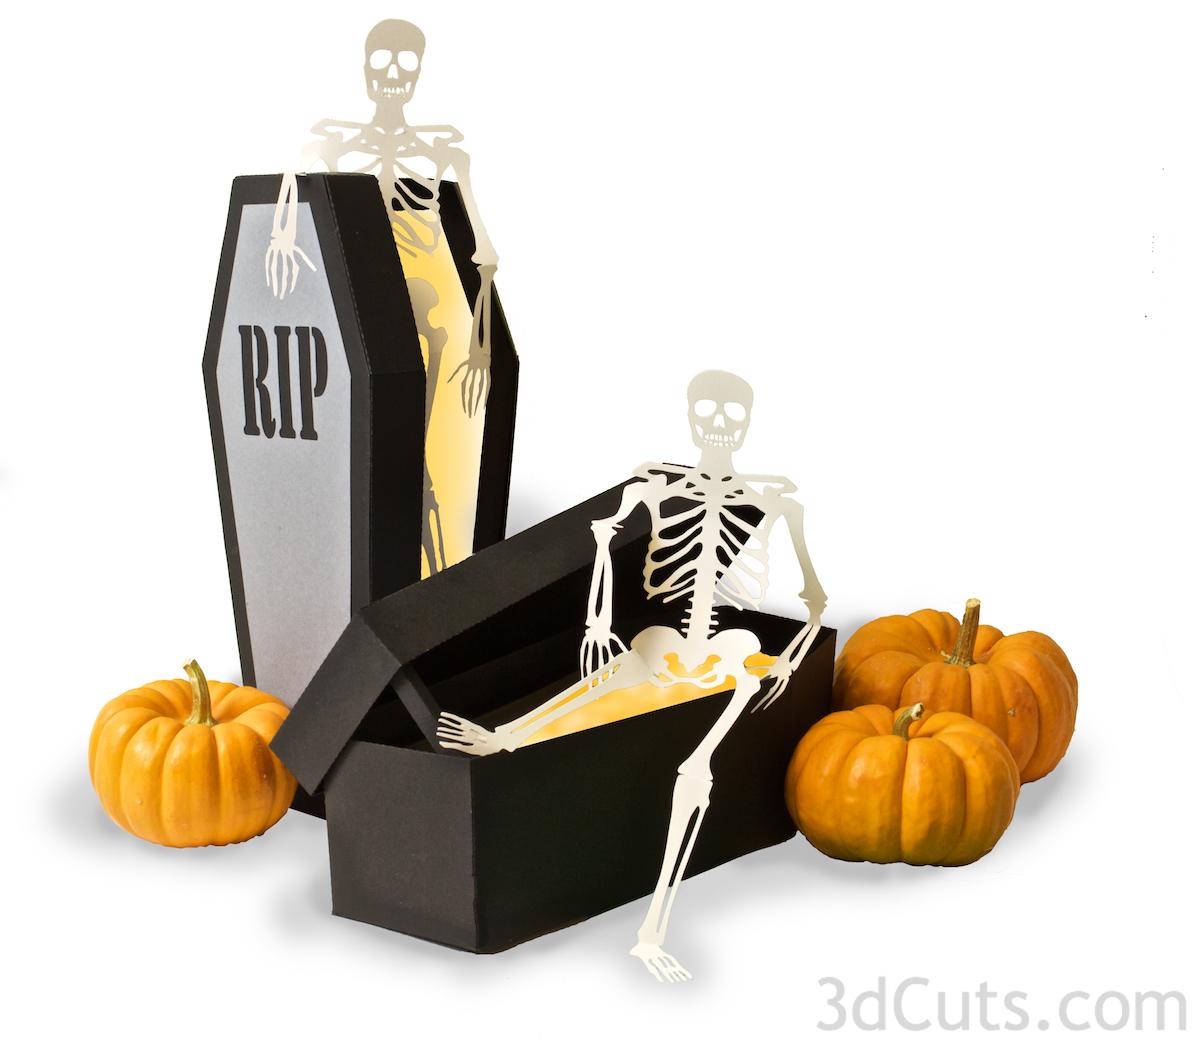 Haunted Caskets with decorating skeletons for Halloween decor by Marji Roy of 3dcuts.com